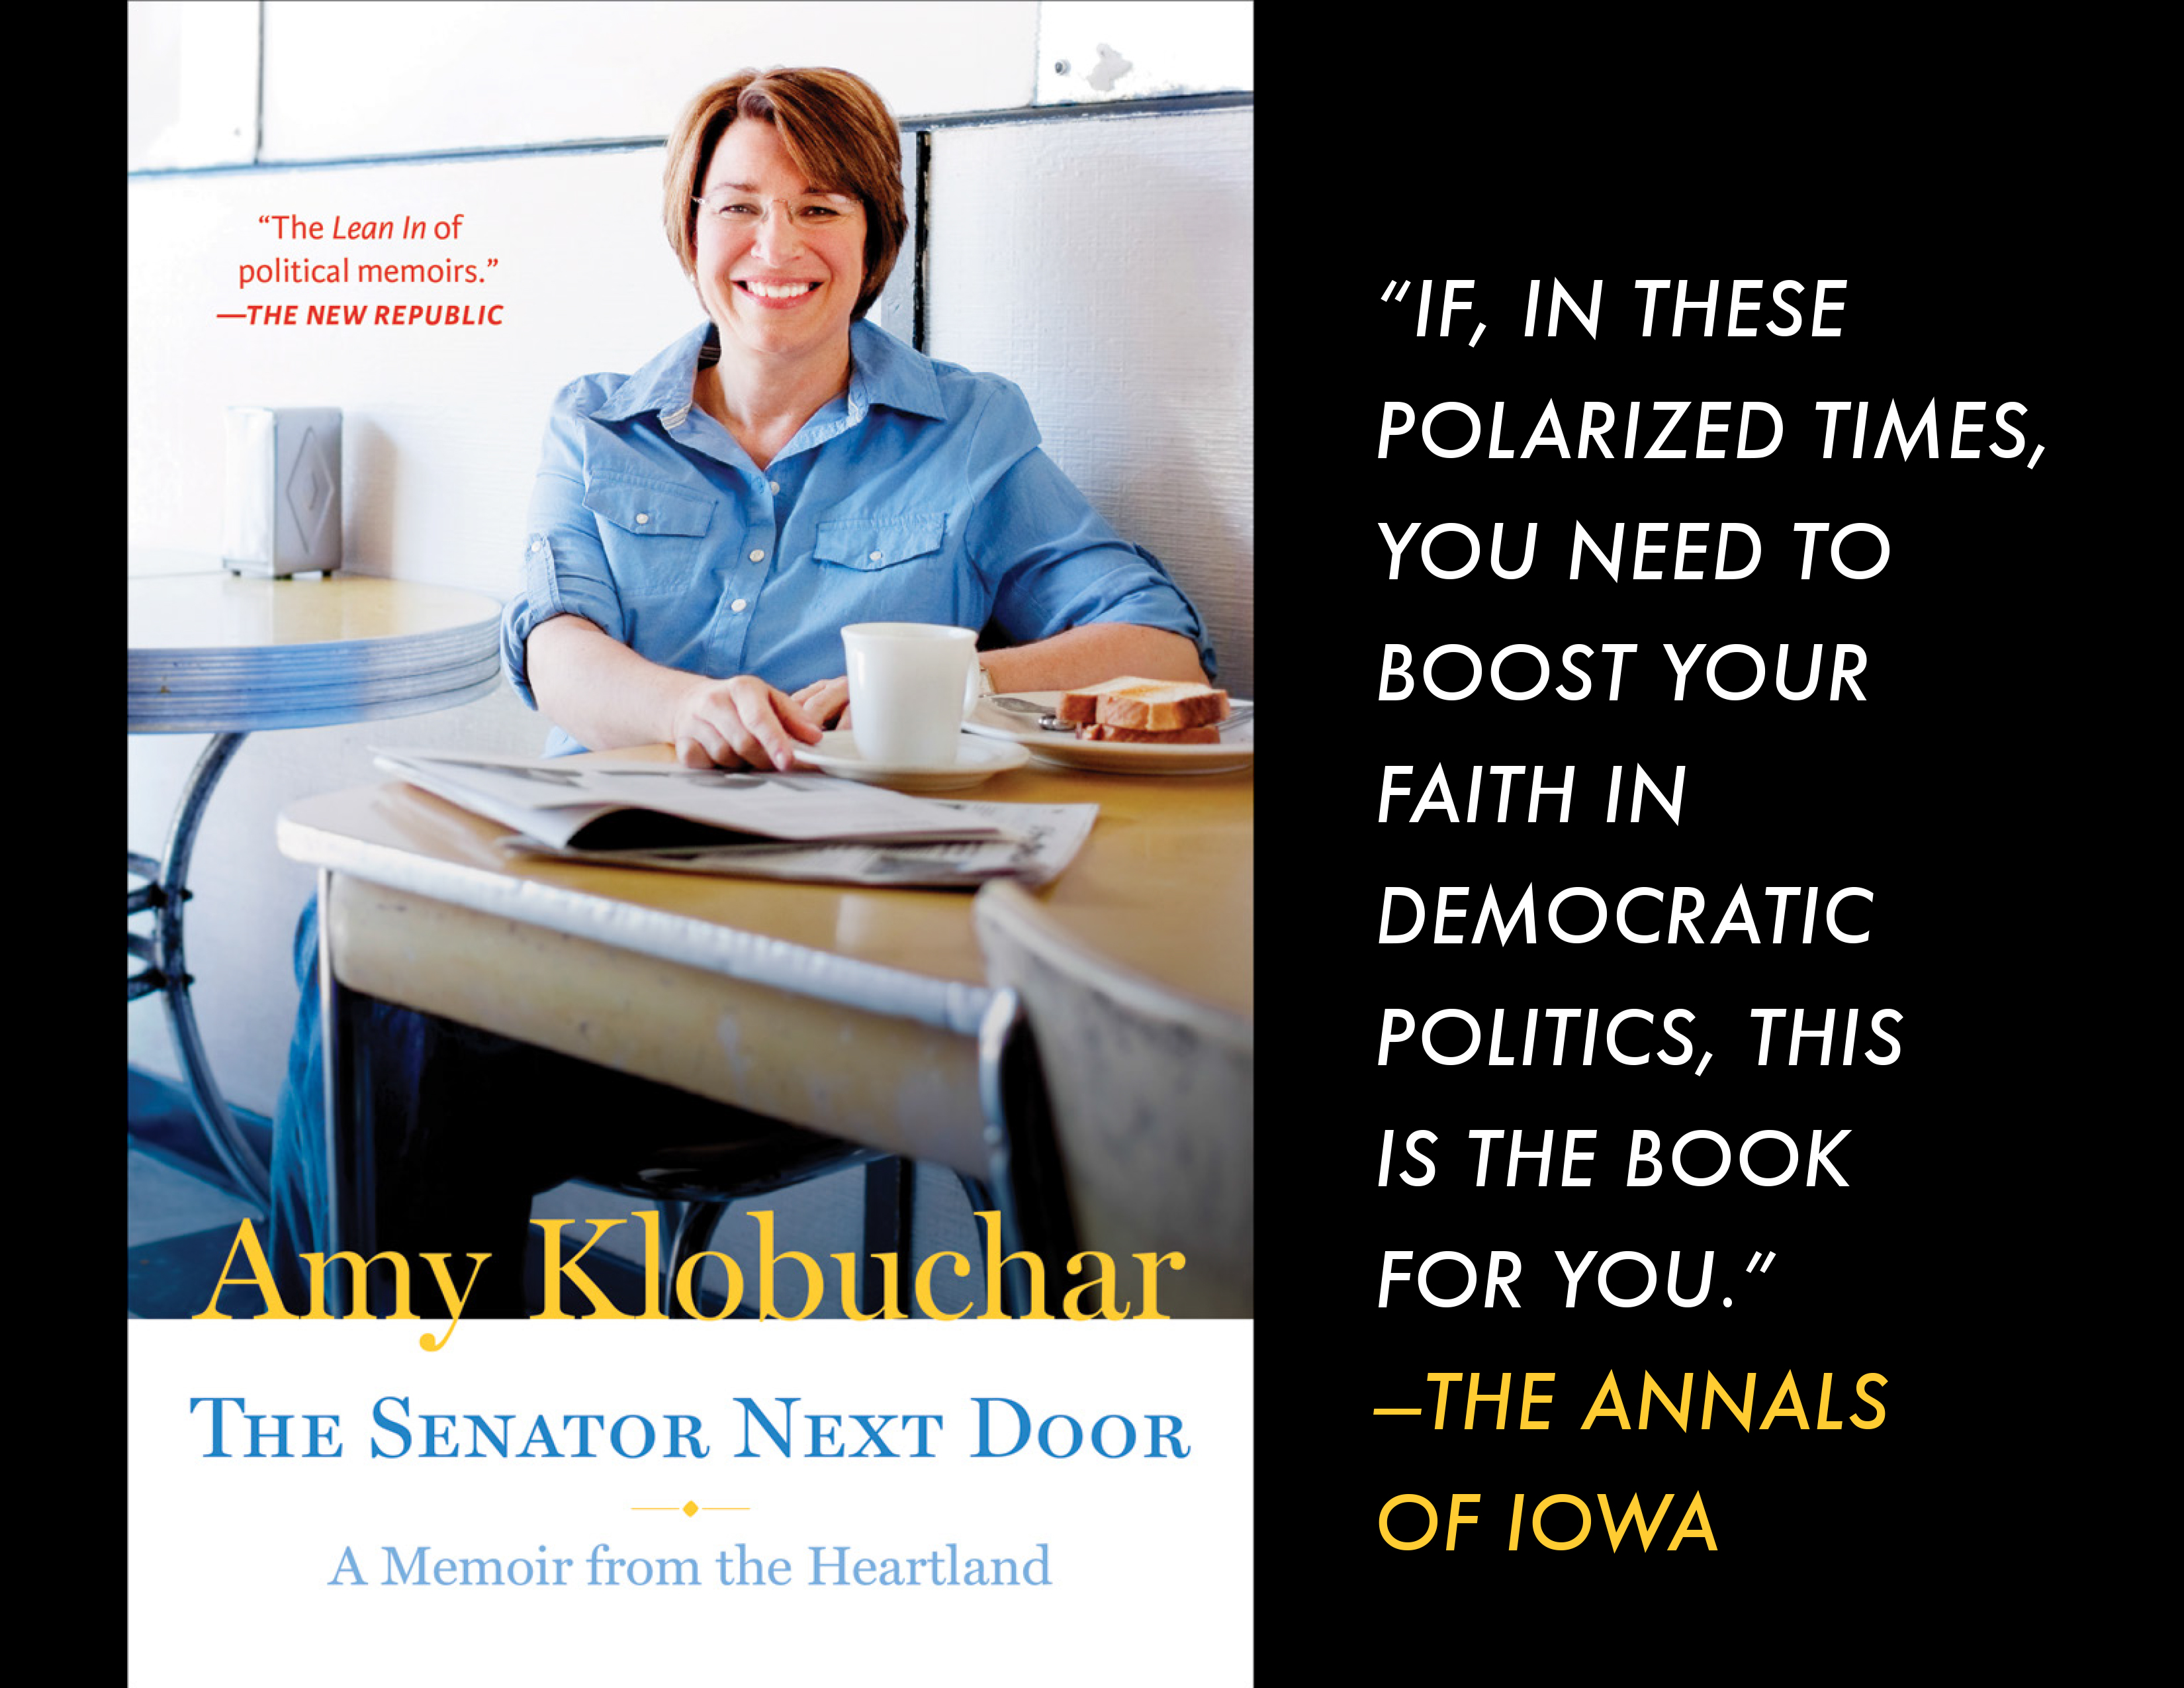 University of Minnesota Press is the proud publisher of Amy Klobuchar's paperback memoir, THE SENATOR NEXT DOOR.